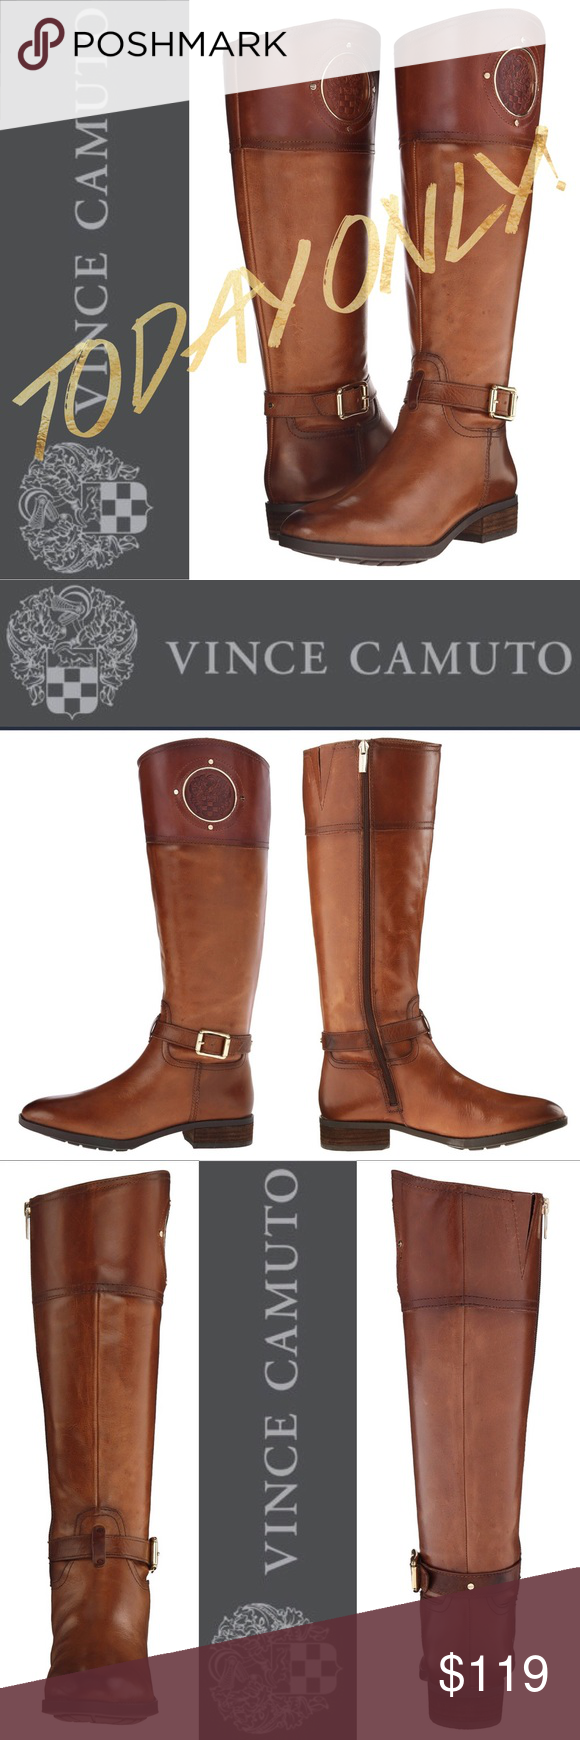 """TODAY ONLY Vince Camuto wide calf riding boot 5.5 Vince Camuto sale TODAY ONLY!   Phillies wide calf boot In rich cognac  Knee-high riding boot with polished hardware Stacked heel, 1.5"""" Shaft, 16.5"""" Leg circumference, 14.5"""" Leather upper Almond toe Synthetic lining and sole Lightly padded insole  Brand new & never worn!  Size 5.5 - WIDE calf! Hard to find and never on sale! $$$$ Retails for $239 $$$$  ~~*~~No Trades~~*~~  Sale ends at midnight Vince Camuto Shoes Heeled Boots"""